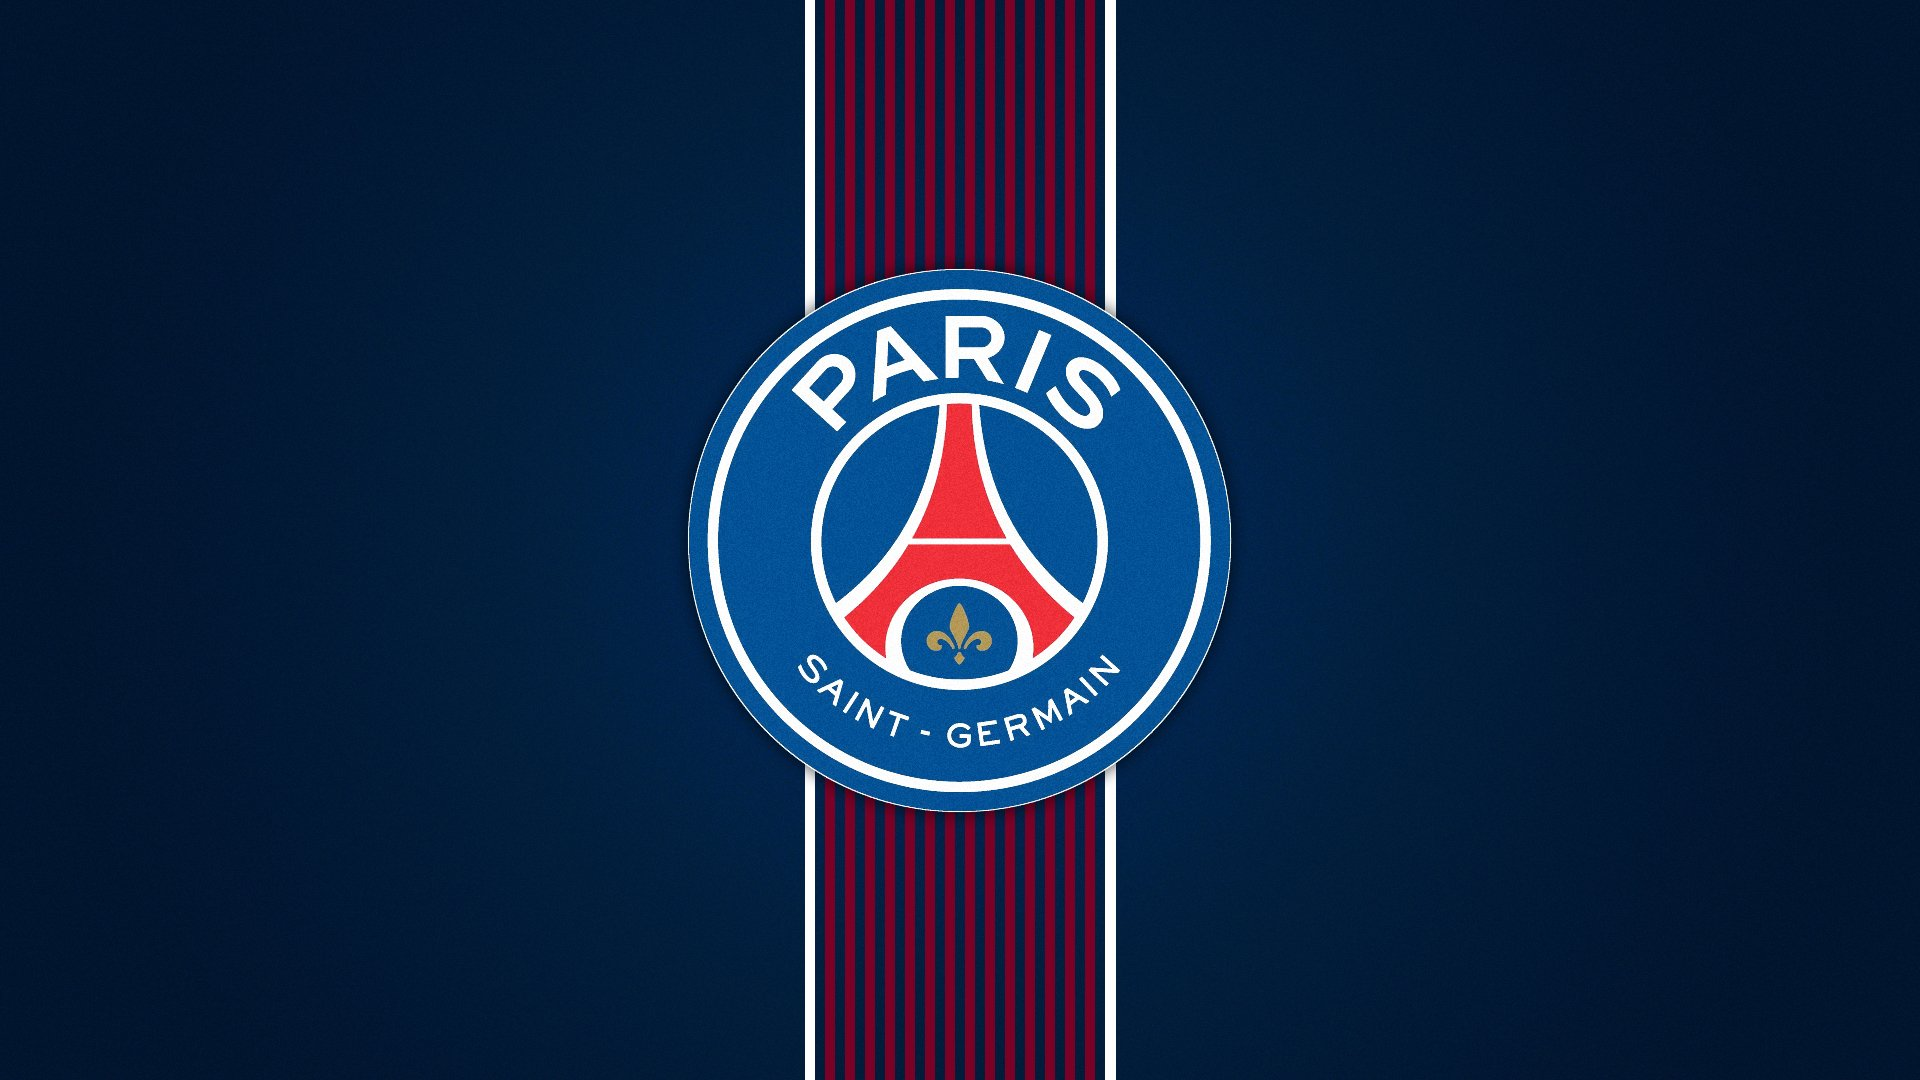 Paris Saint Germain F C Hd Wallpaper Background Image